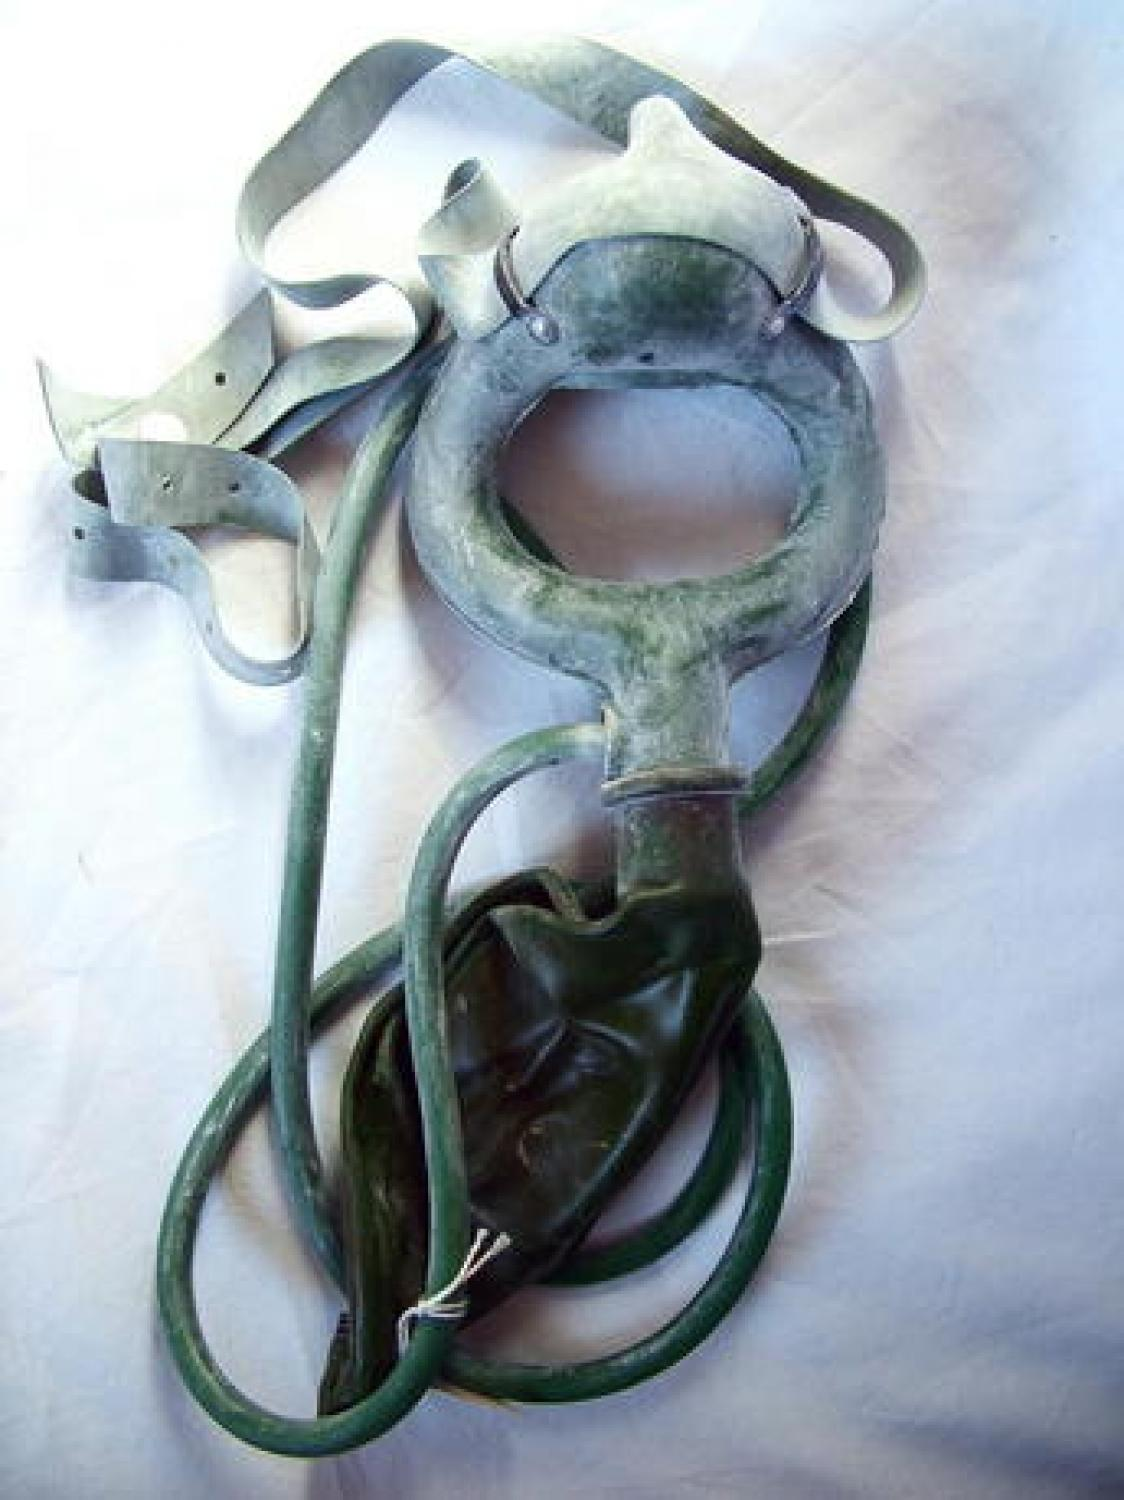 USAAF A-7 Oxygen Mask (Commercial)